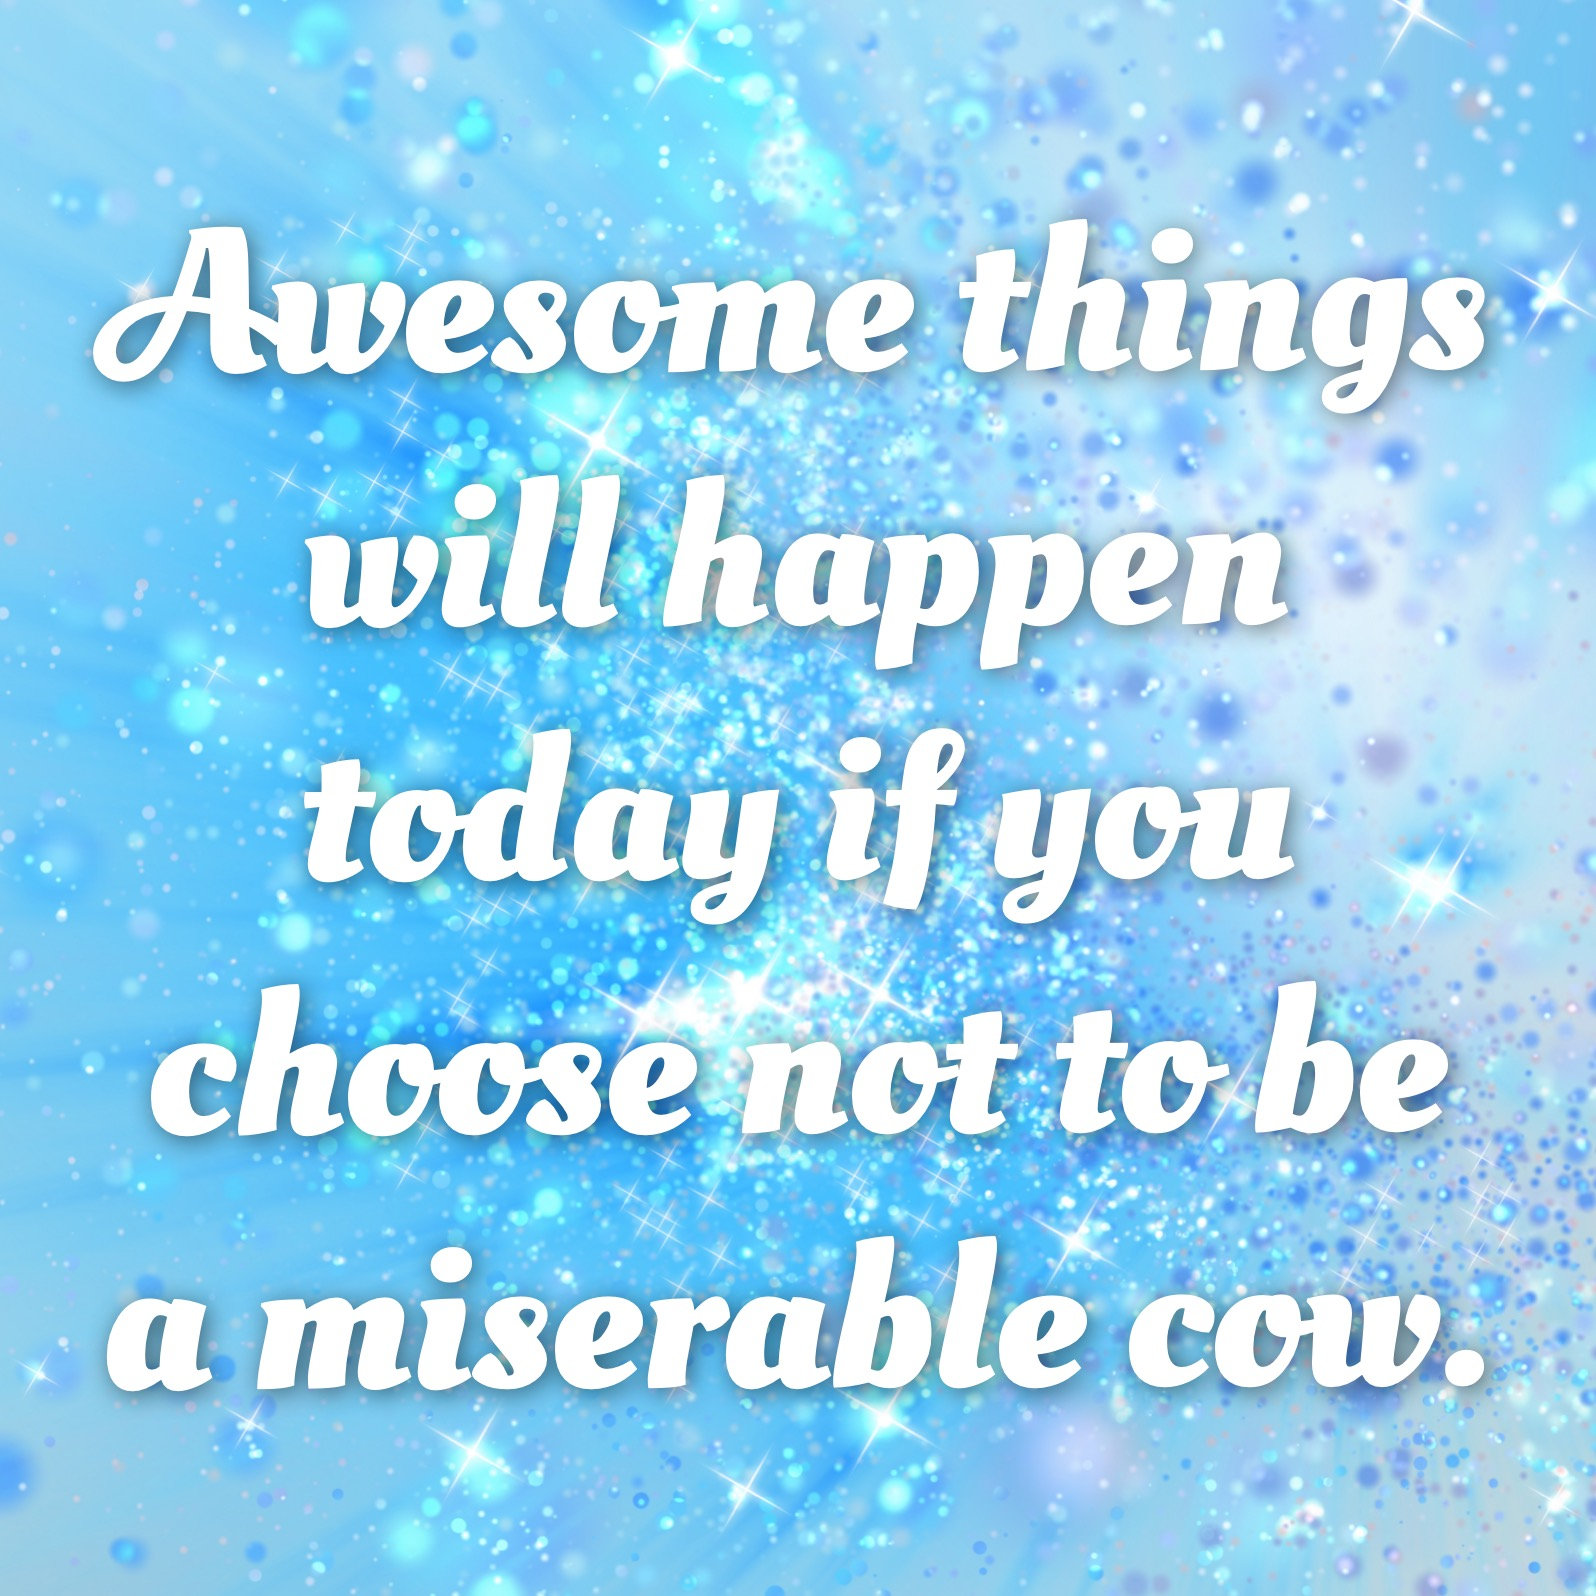 Don't be a miserable cow